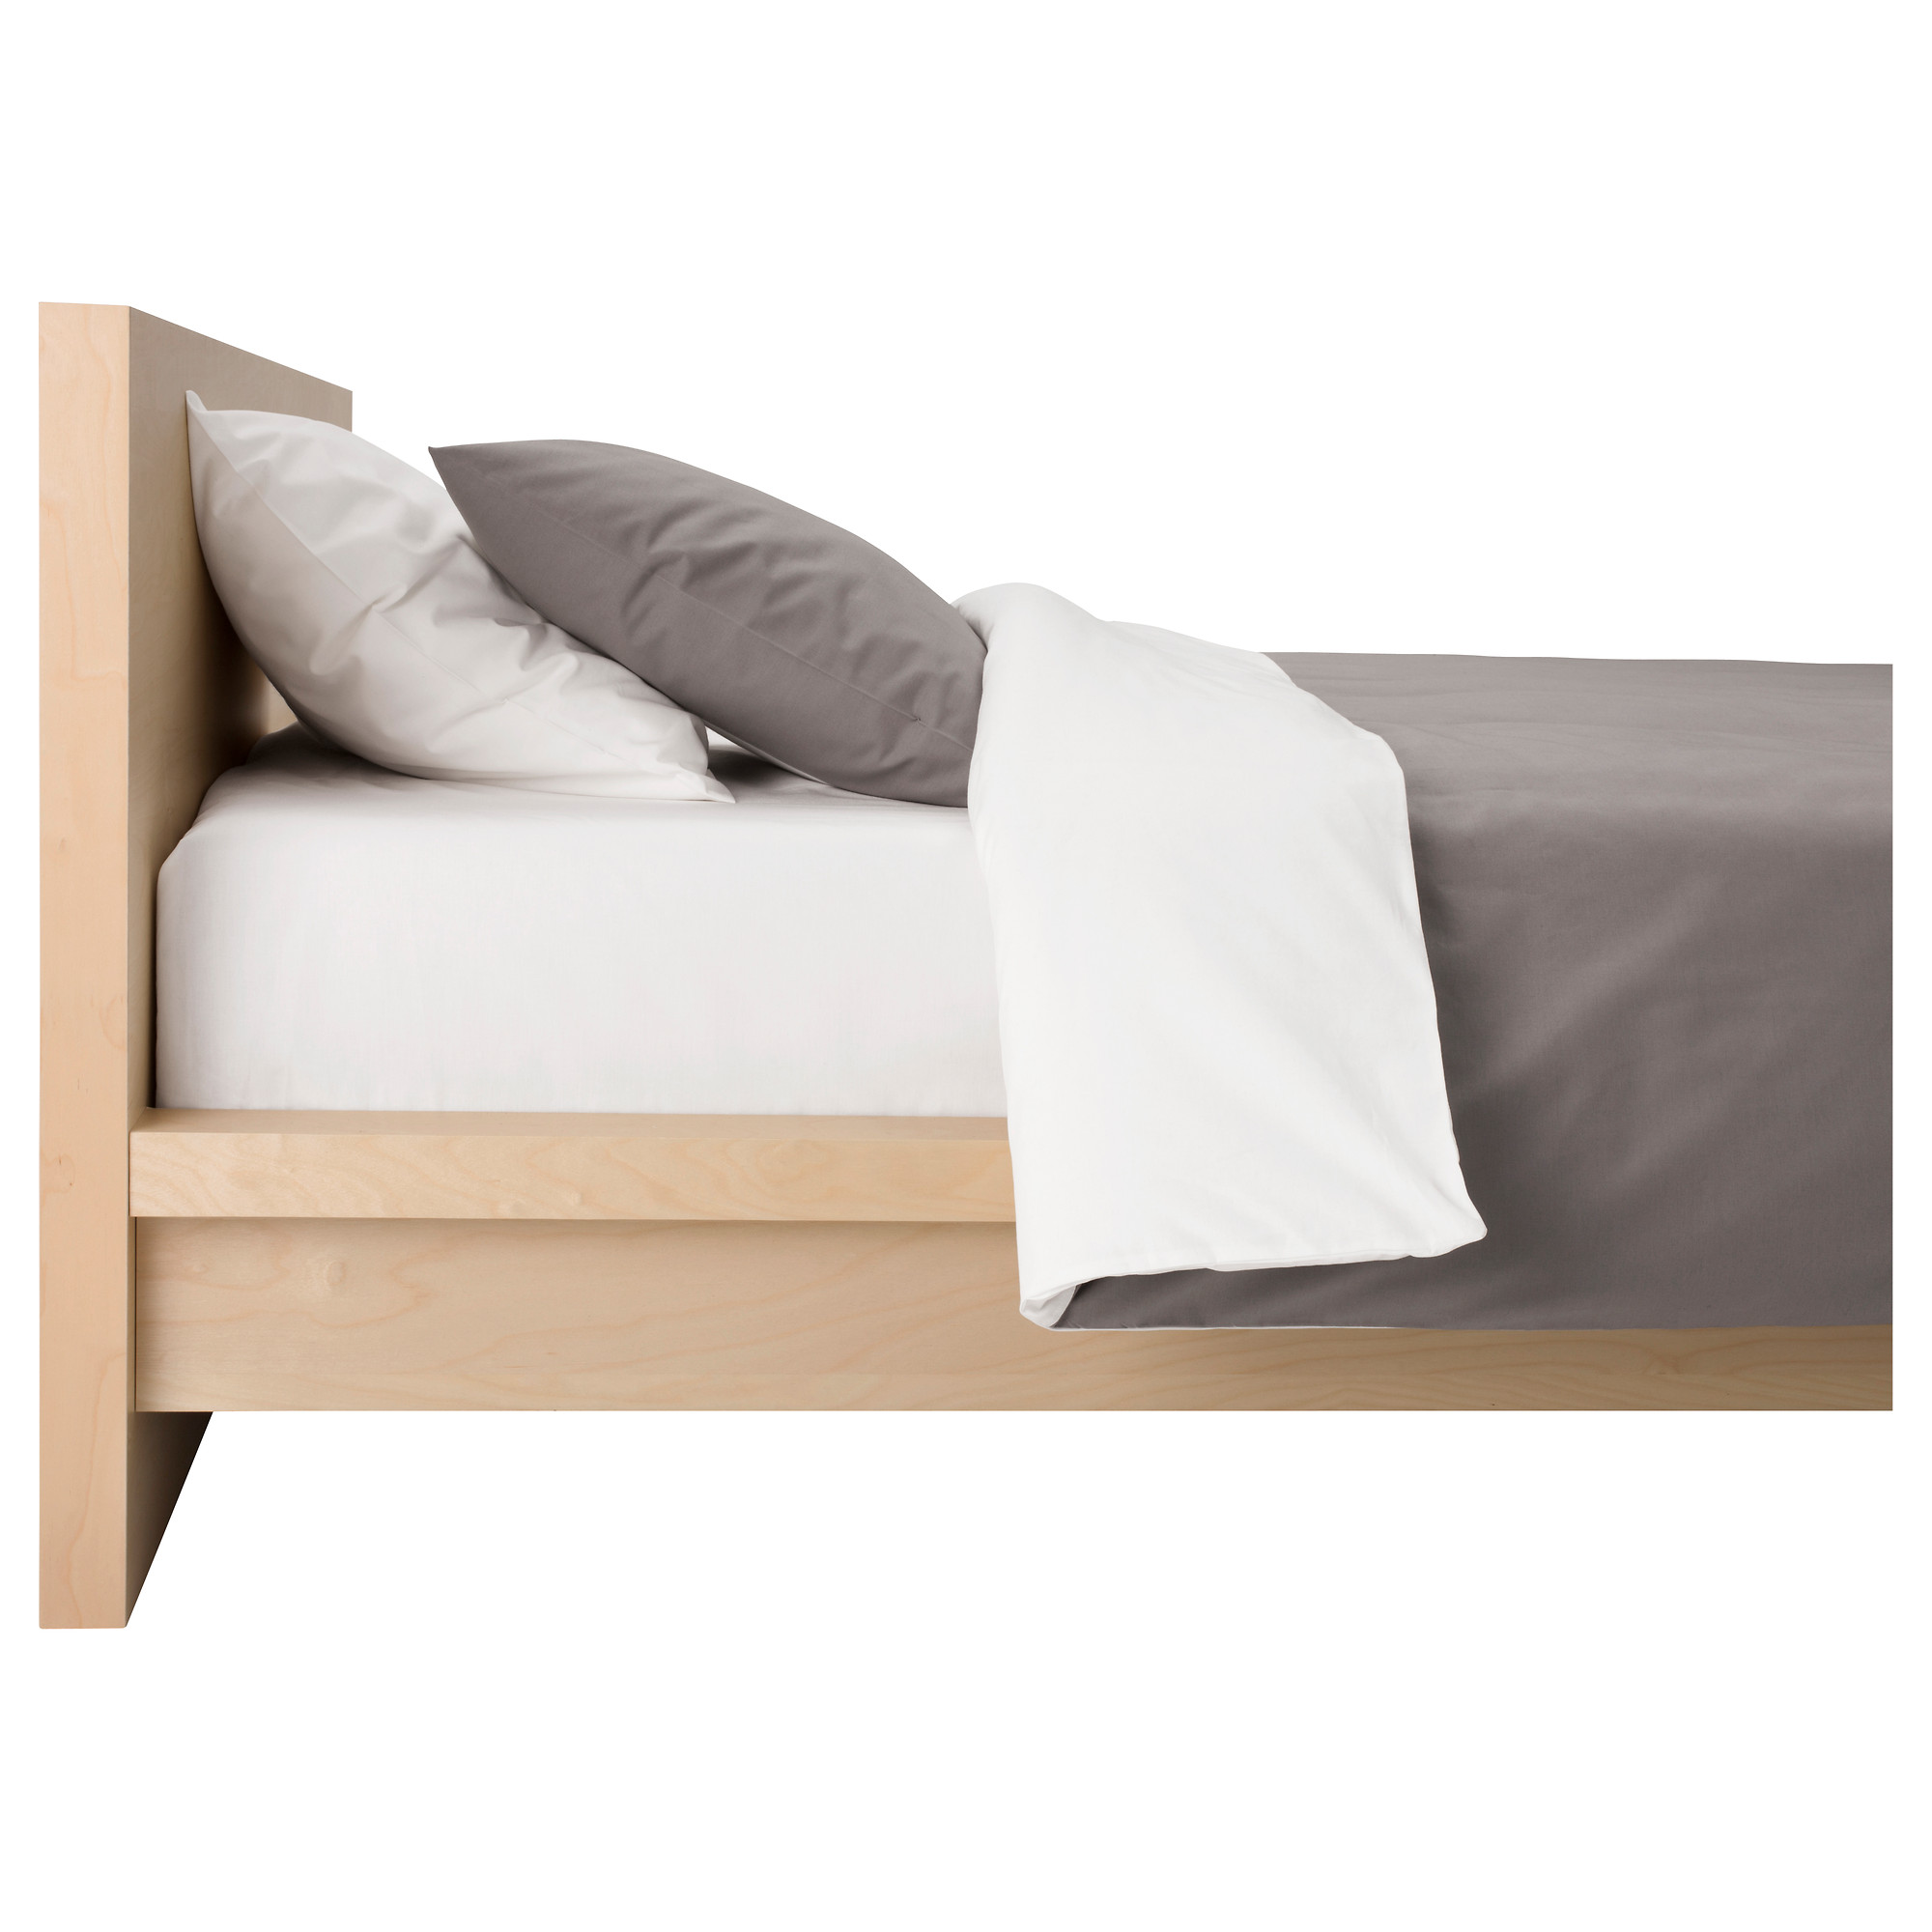 Hardwood Ikea King Bed Platform With Grey White Pillow And Mattres